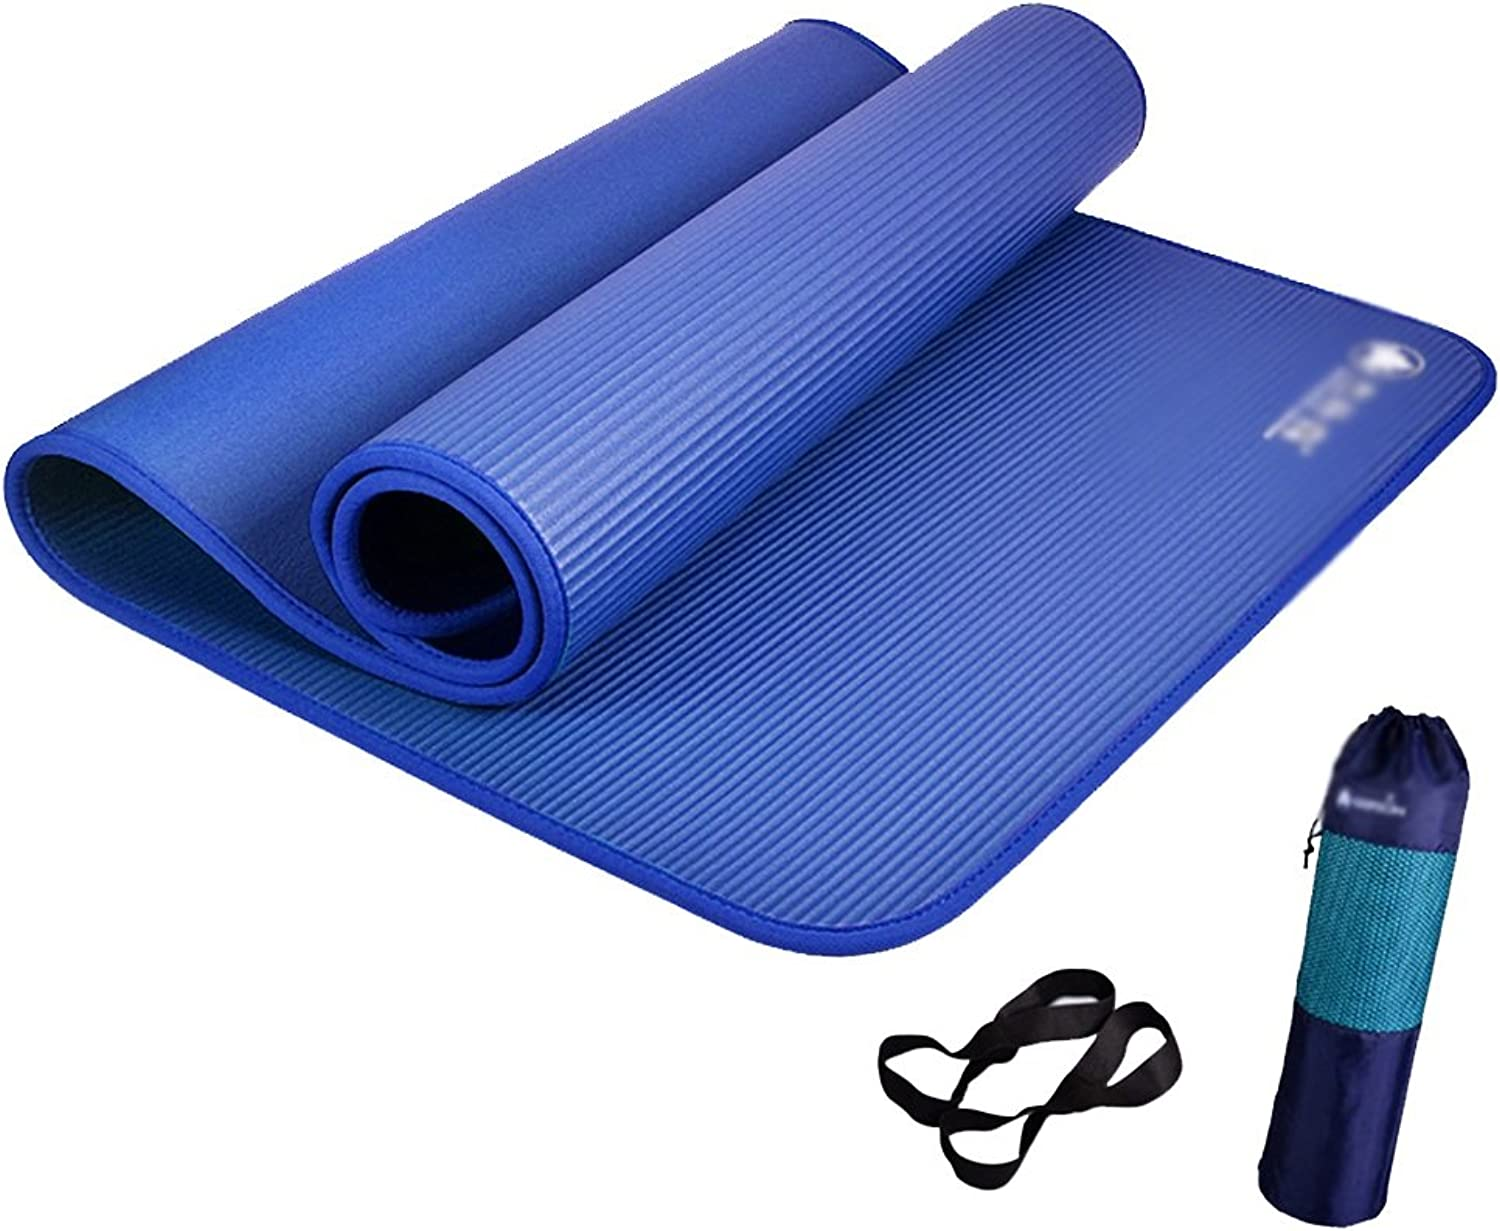 Dance & Gymnastics Mats Exercise Mats Yoga mat Thickened Widened Fitness Camping Exercise mat NonSlip Wrapped Edge Section 72.8  31.5  0.4in (color   blueee, Size   185cm80cm10mm)